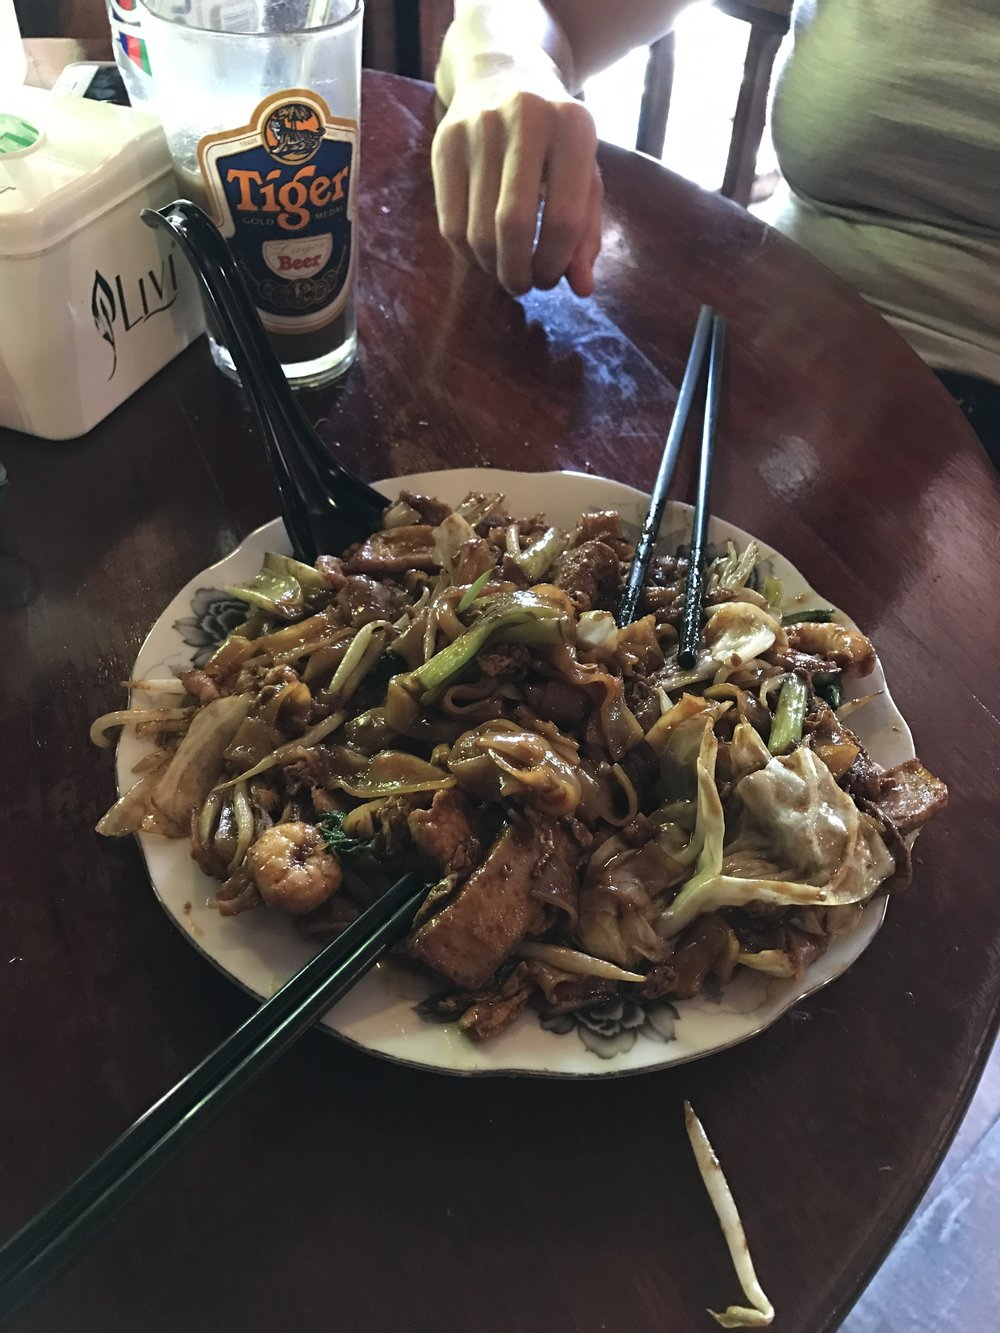 A giant plate of noodles, meat and veggies. It came with a raw egg on top to stir in. I wish I could remember what it was called.